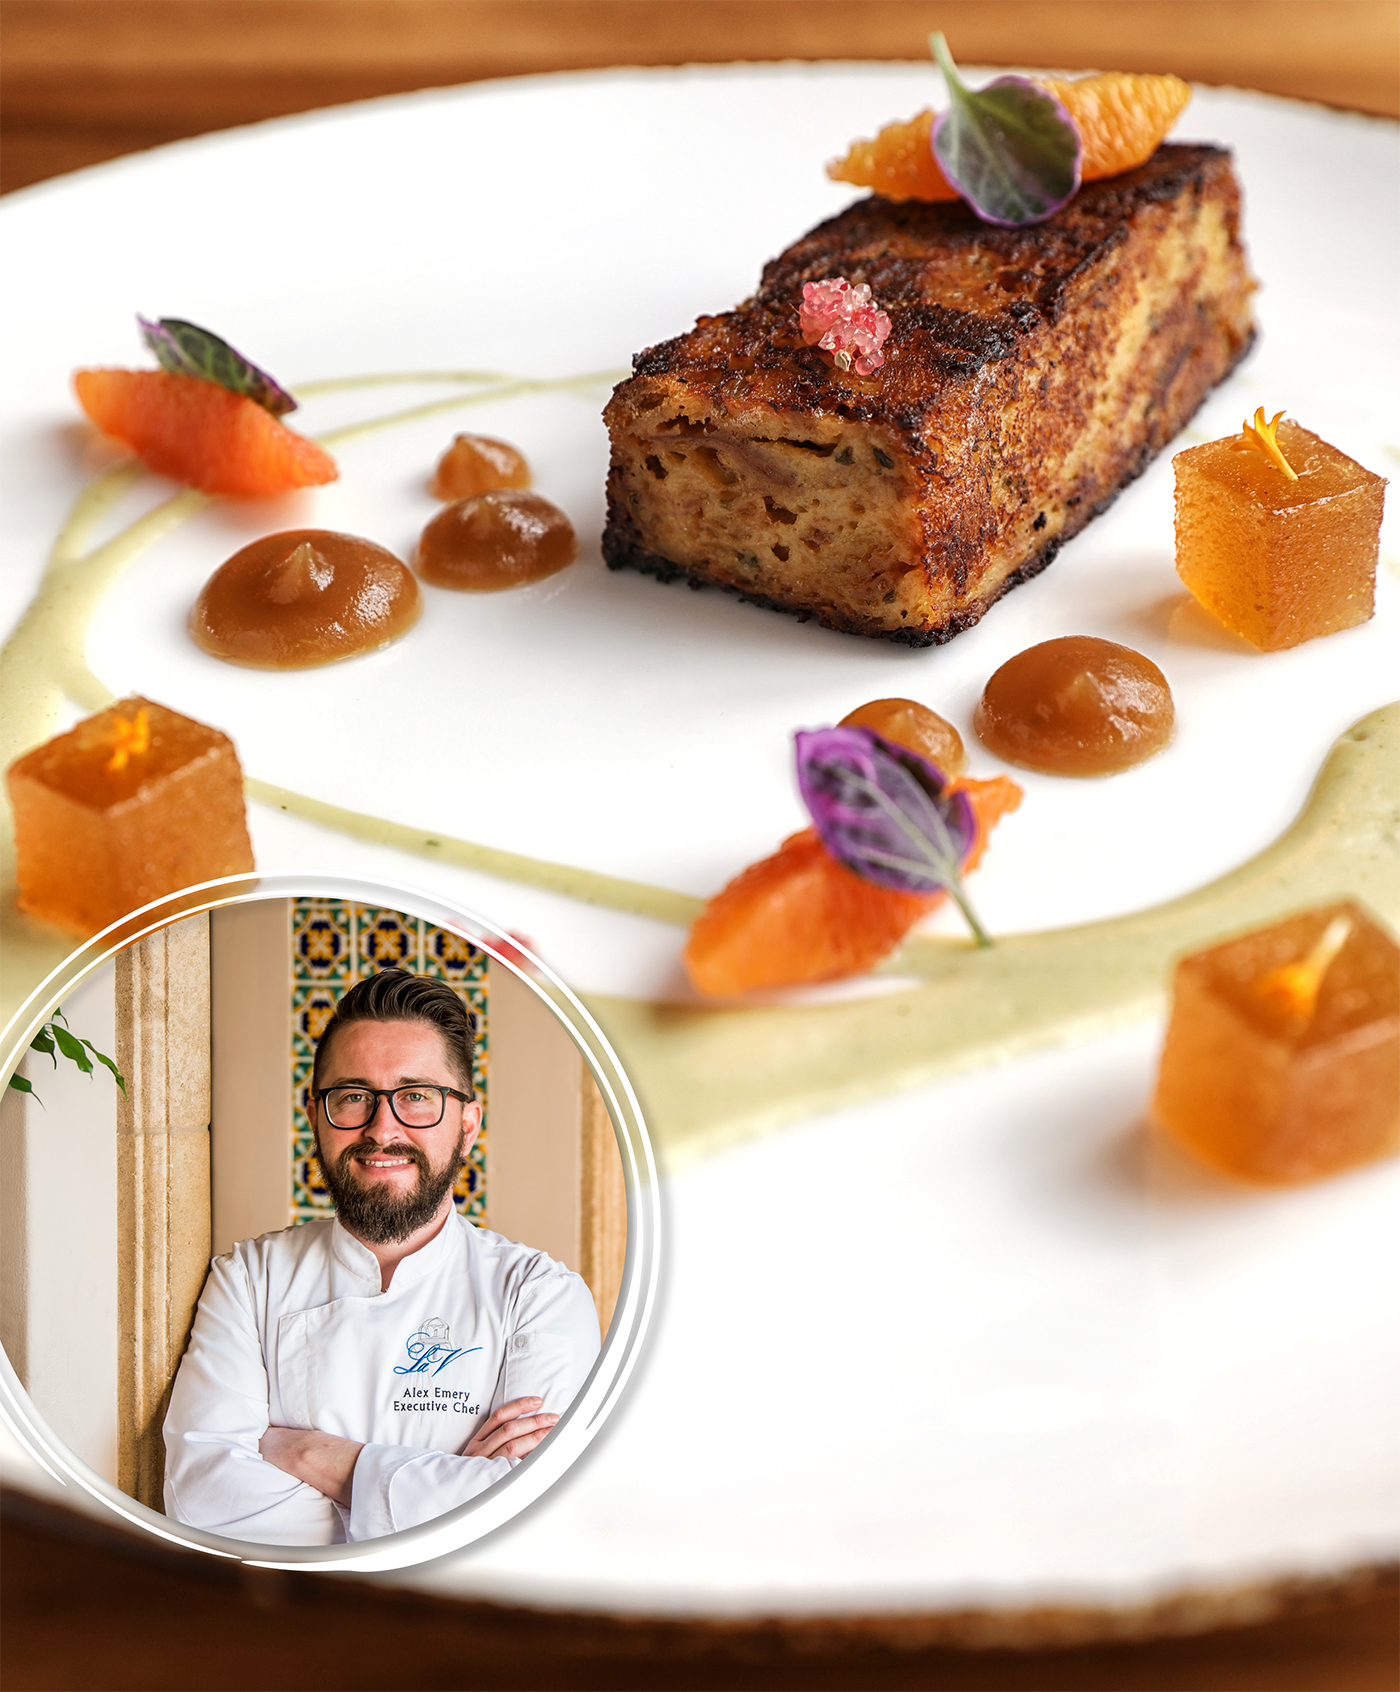 Duck Confit Bread Pudding from Alex Emery, Executive Chef at The MED Oceanview Restaurant